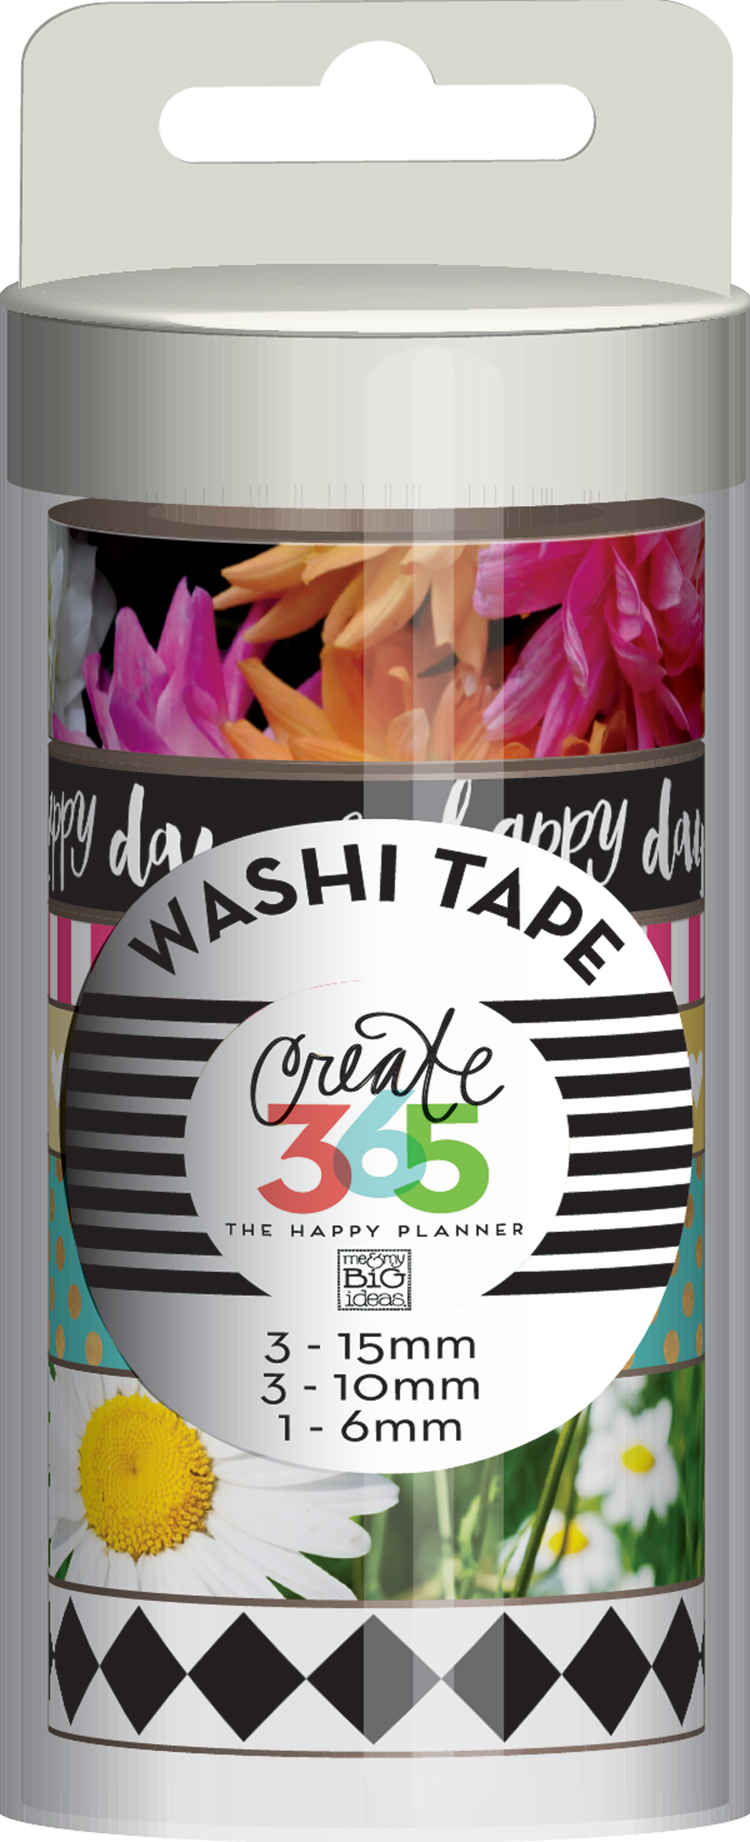 'Picture Quote' washi tape for The Happy Planner™ | me & my BIG ideas.jpg